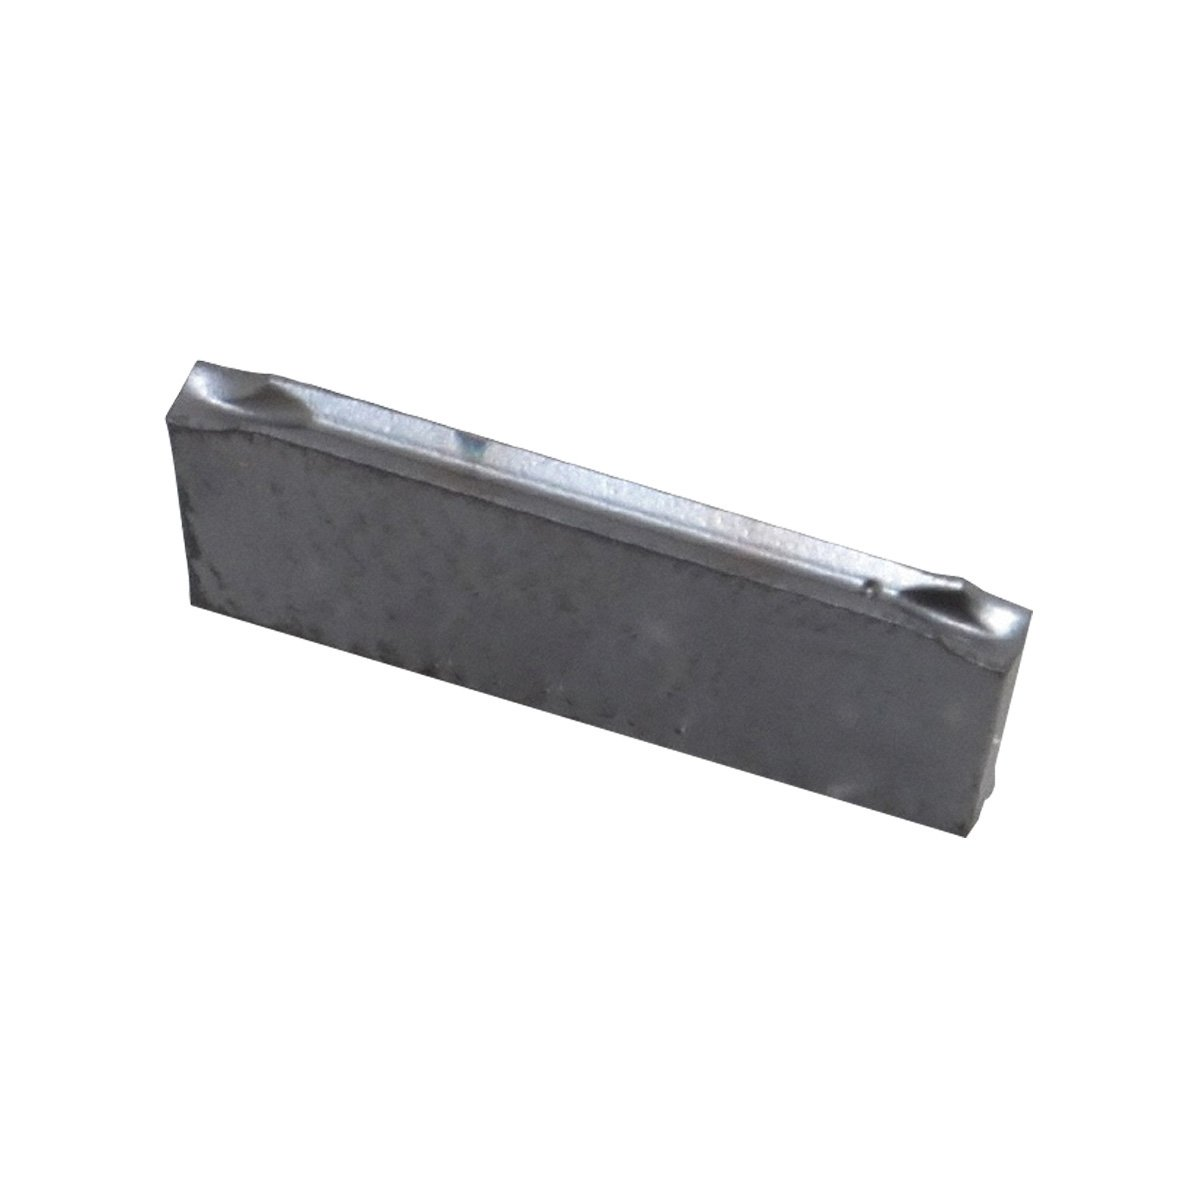 20.1 mm OAL HHIP 6024-5004 DGN3102C Grade BPS253-CVD Cut-Off and Grooving Insert 3.1 mm Cutting Width